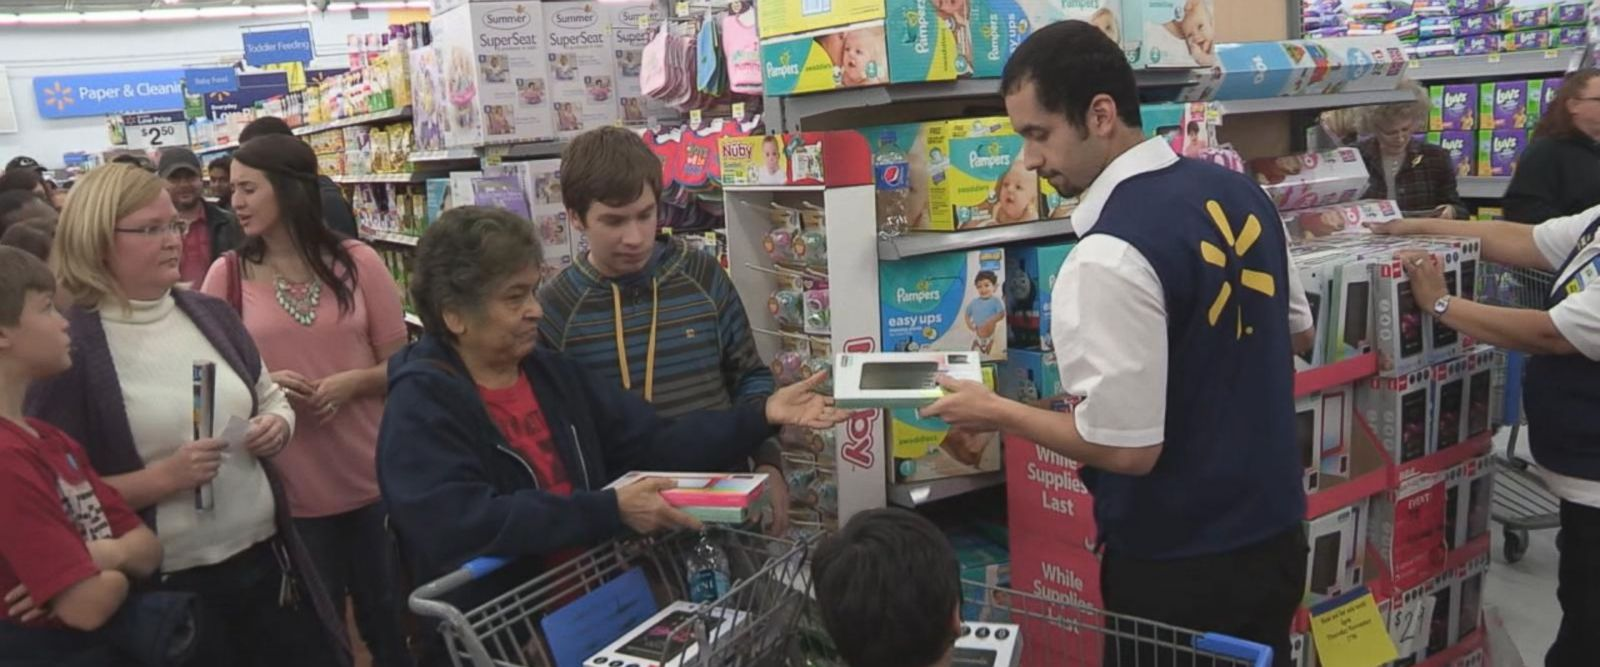 VIDEO: Finding deals on one of the busiest shopping days of the year